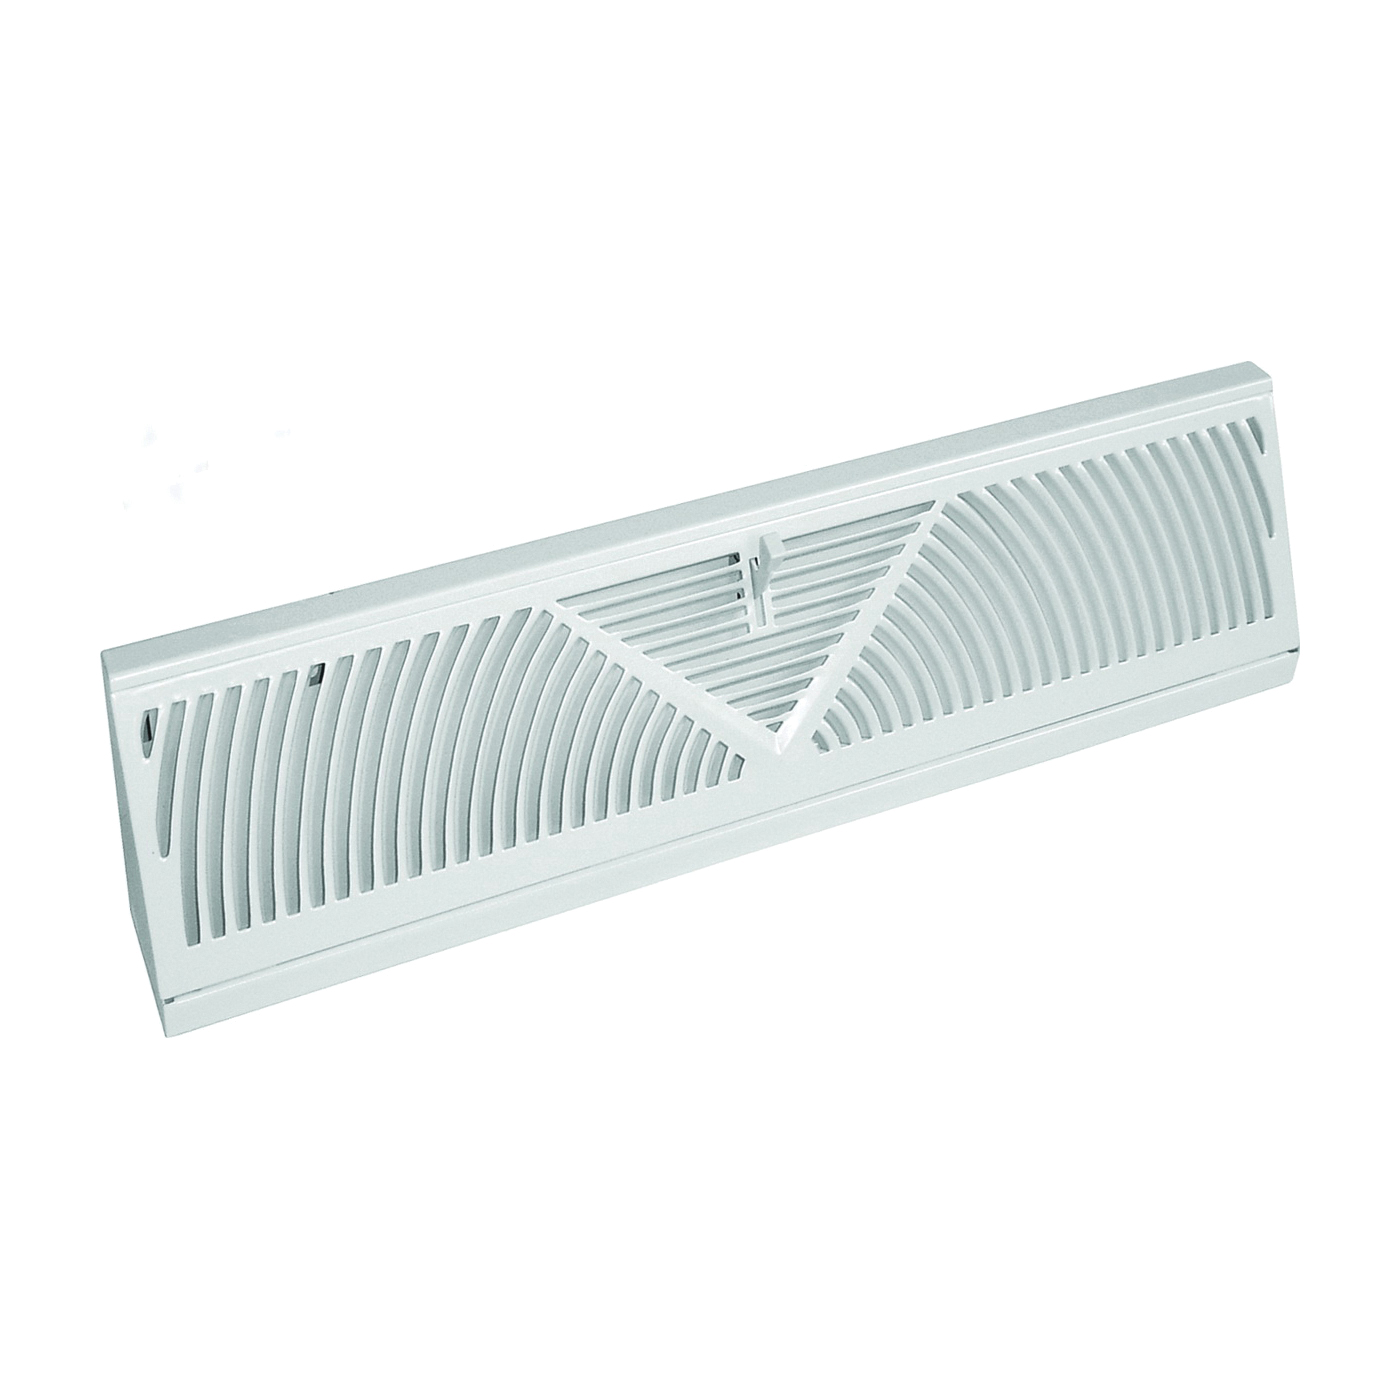 Picture of Imperial RG1627-A Baseboard Diffuser, 18 in L, 2-3/4 in W, Steel, White, Powder-Coated